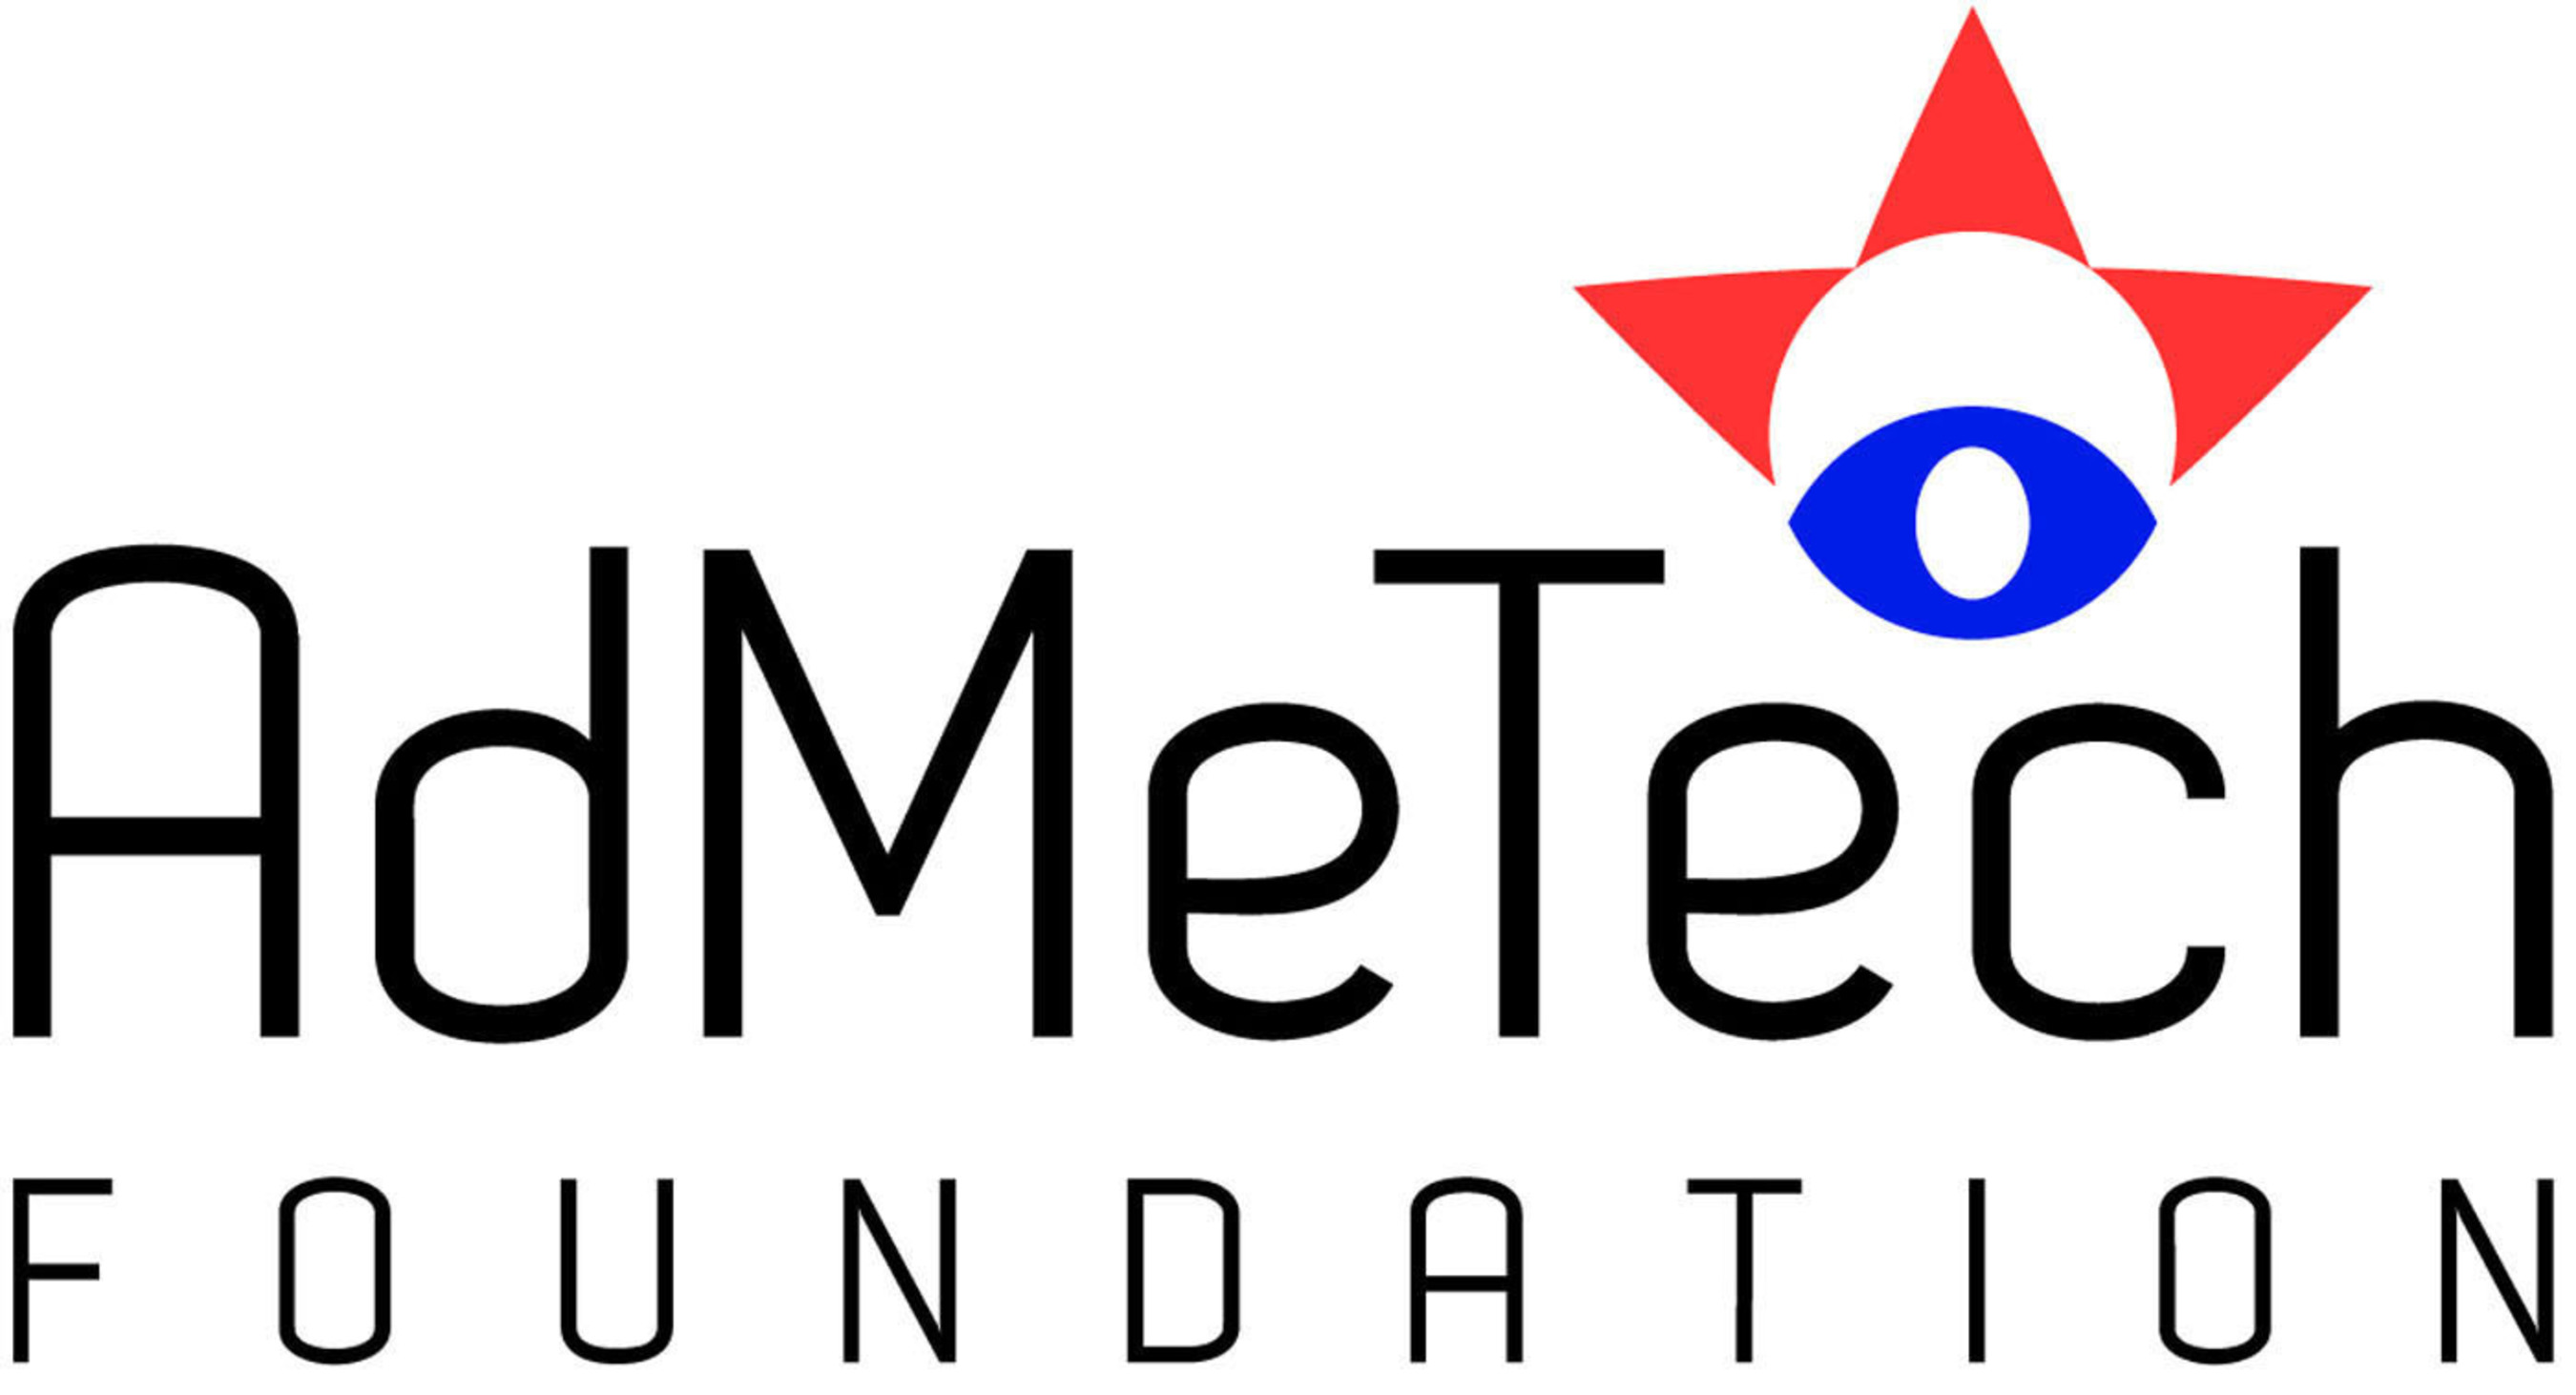 AdMeTech Foundation is a 501(c)(3) non-profit organization dedicated to fighting prostate cancer through the advancement of early detection and treatment. (PRNewsFoto/AdMeTech Foundation)